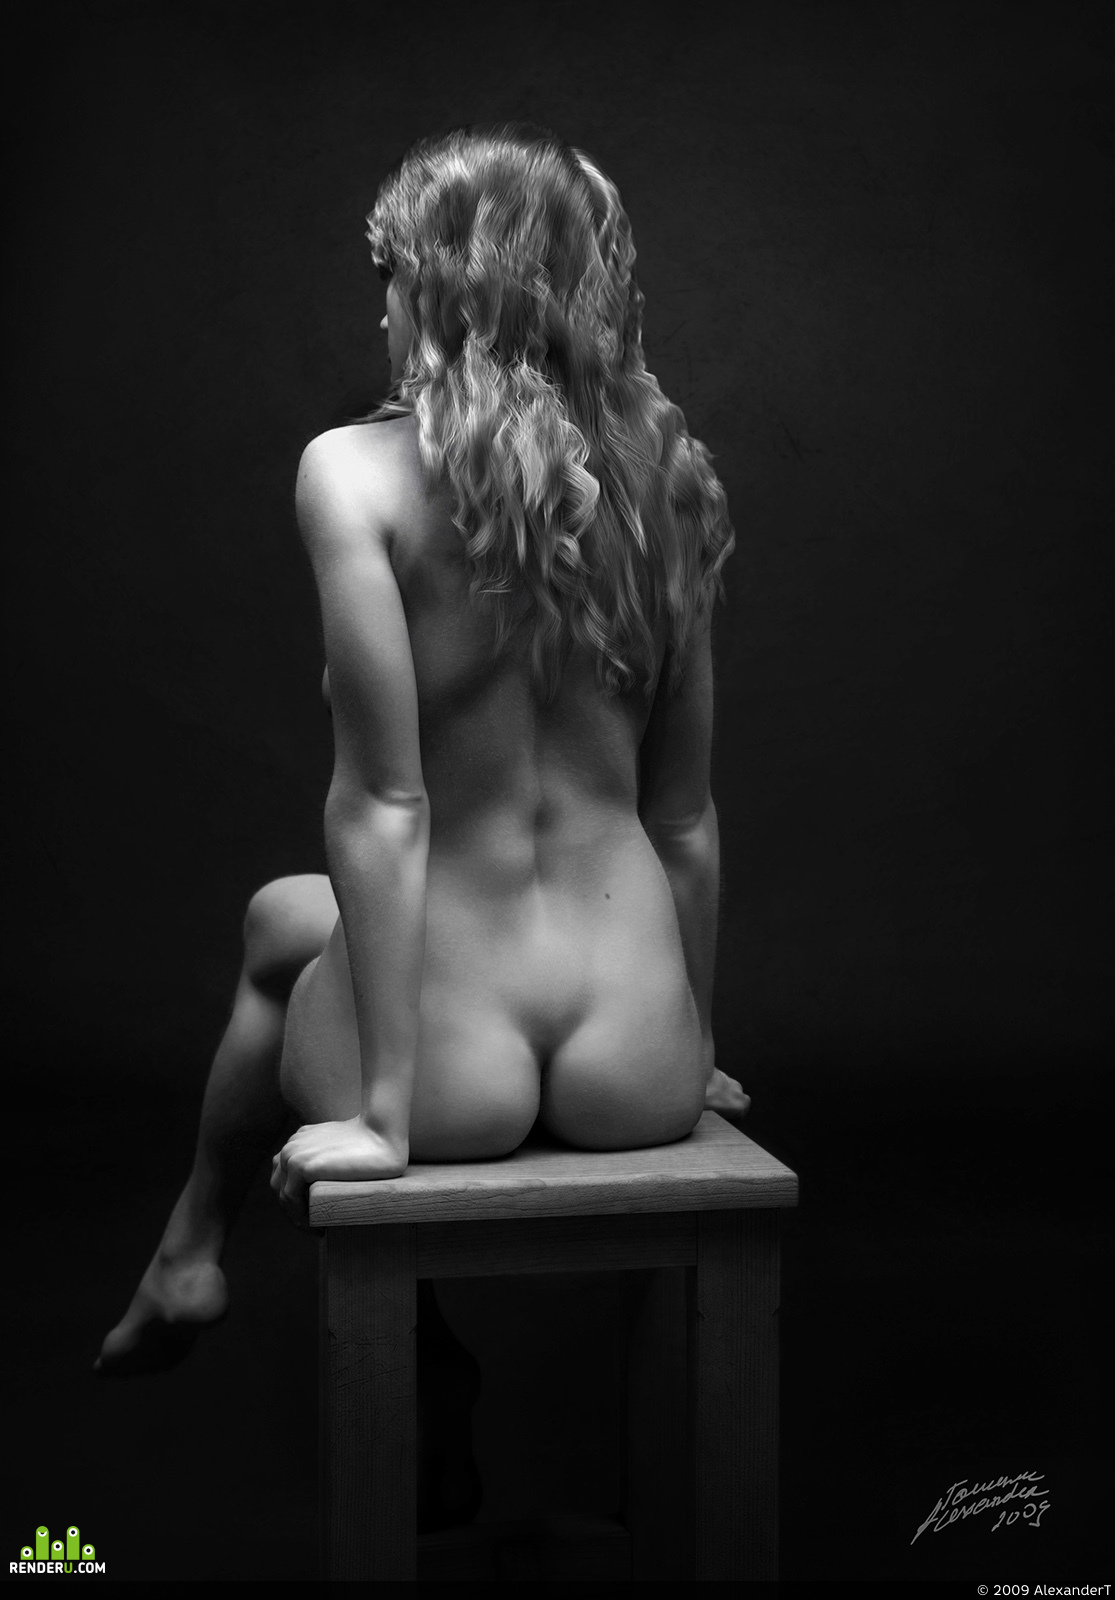 preview Girl on a chair